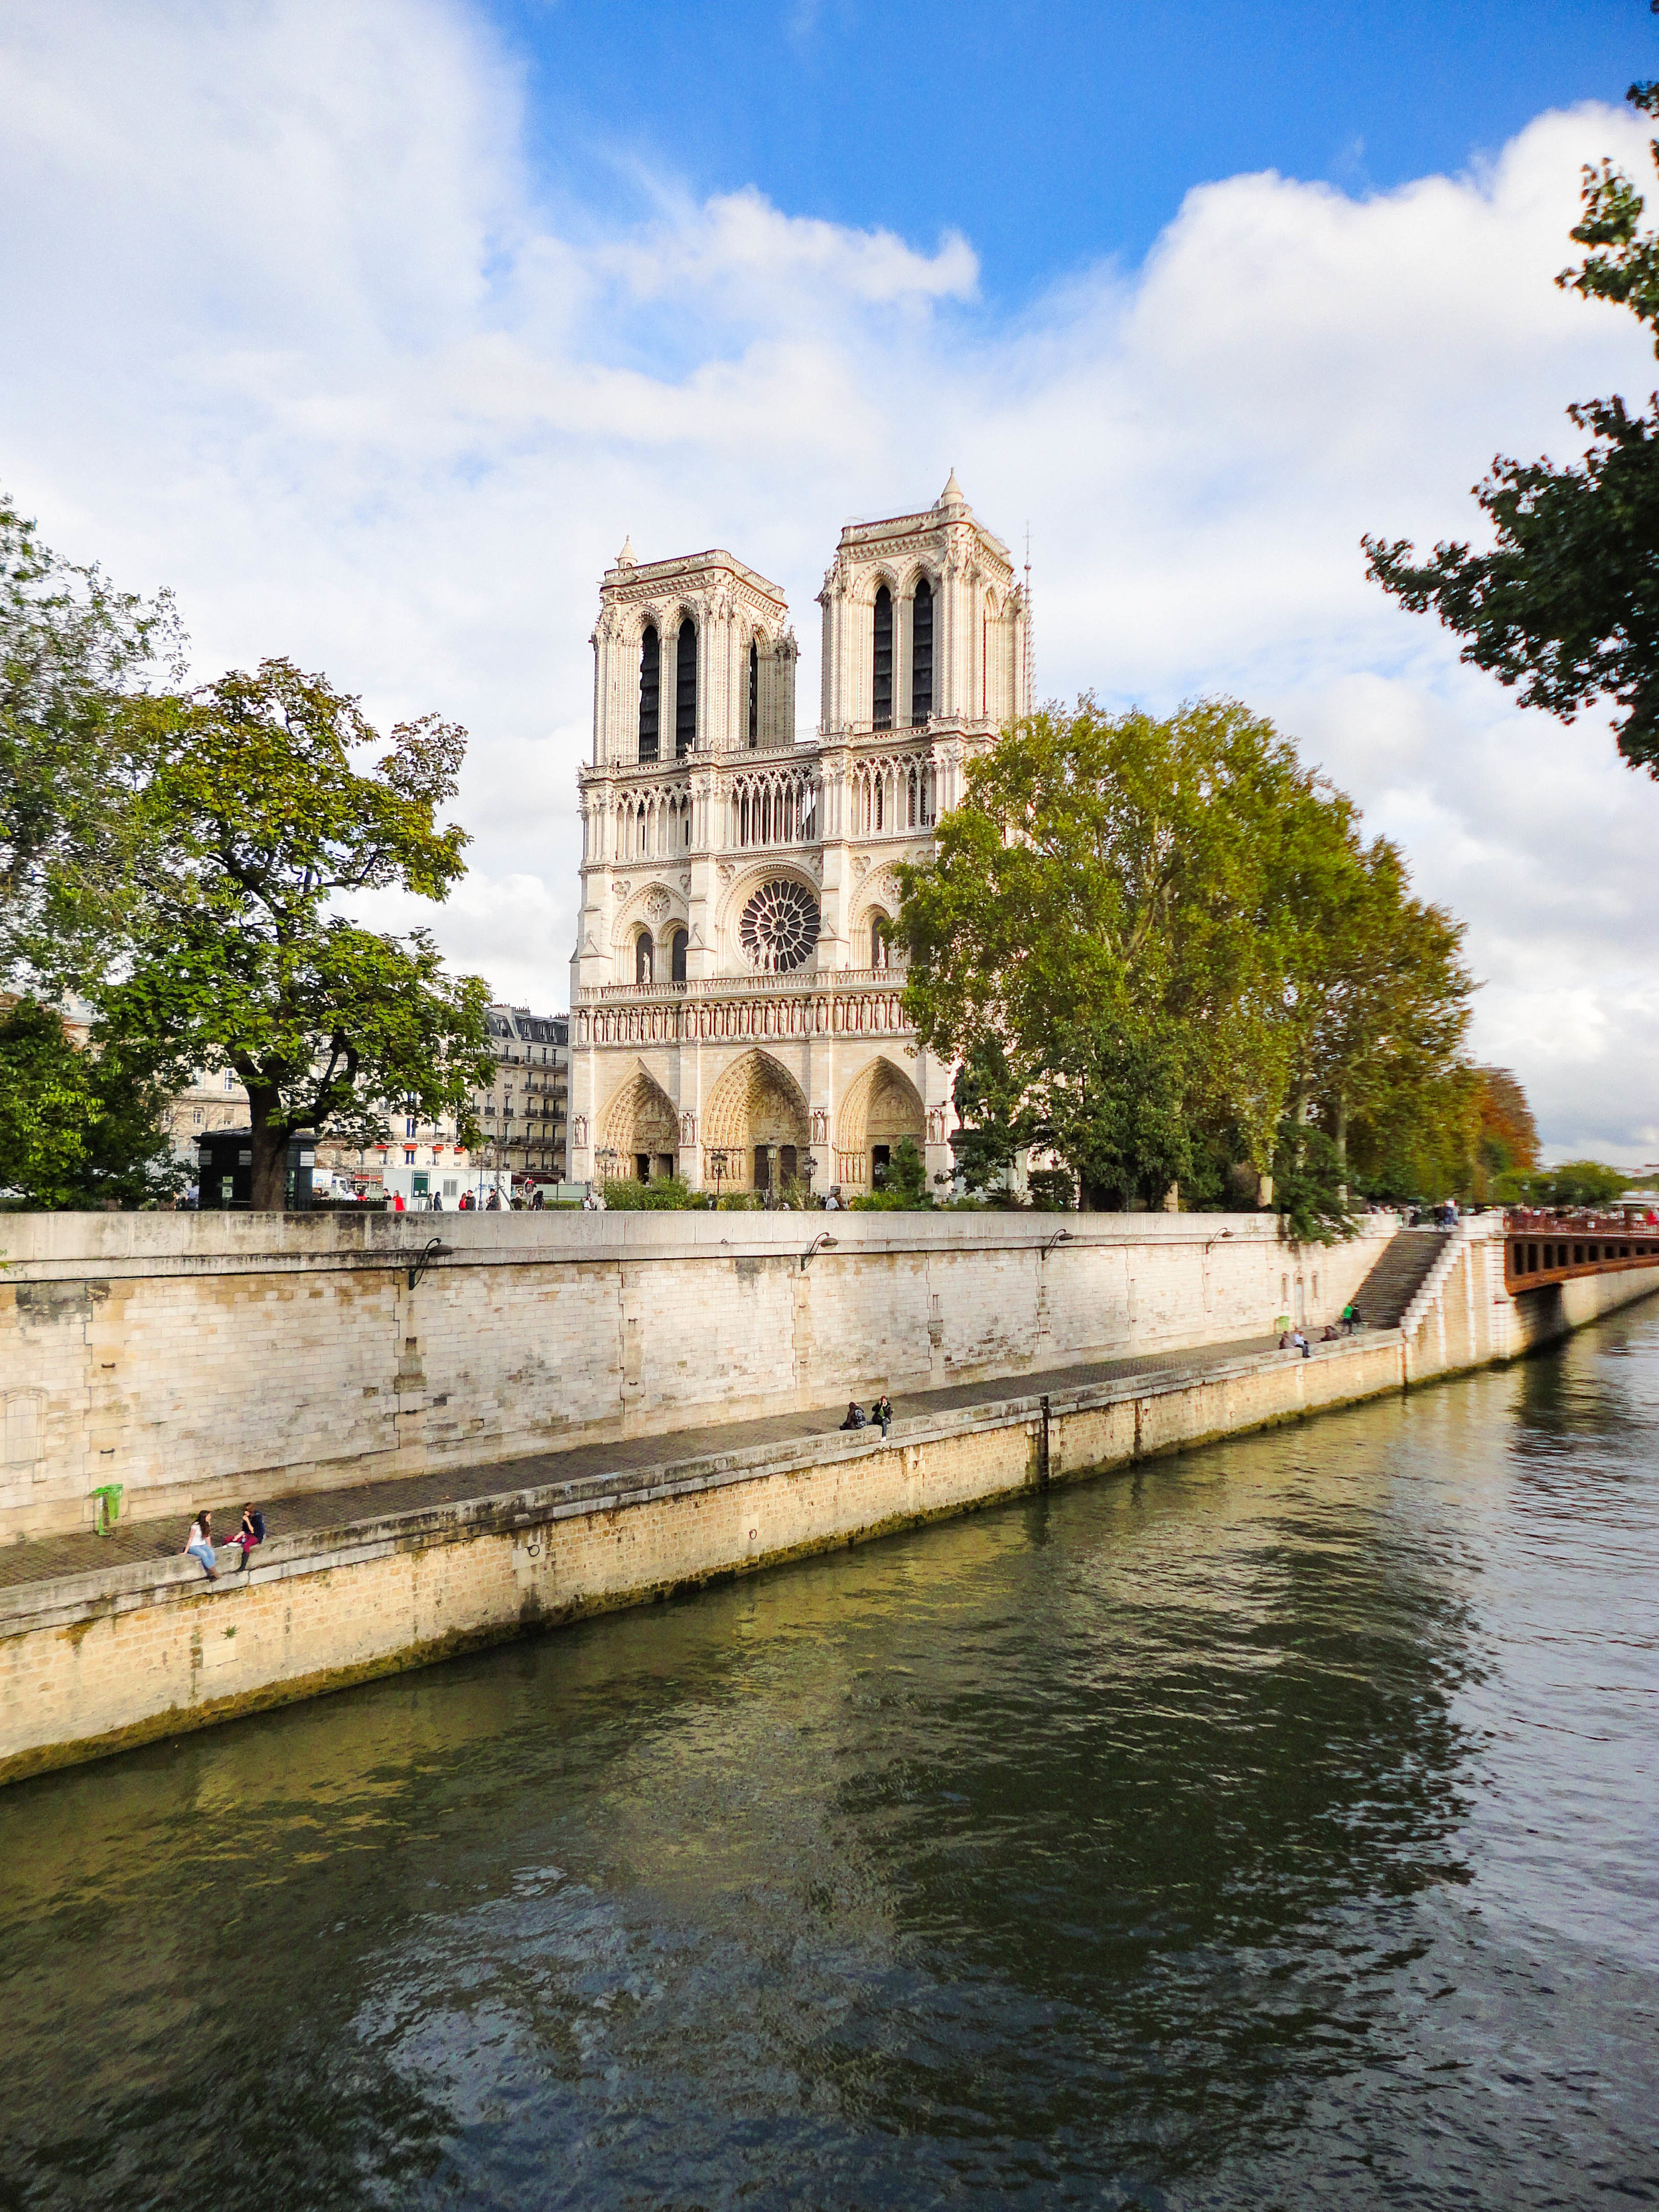 Paris - Want to see Paris in 1 day? We have a guide for that!